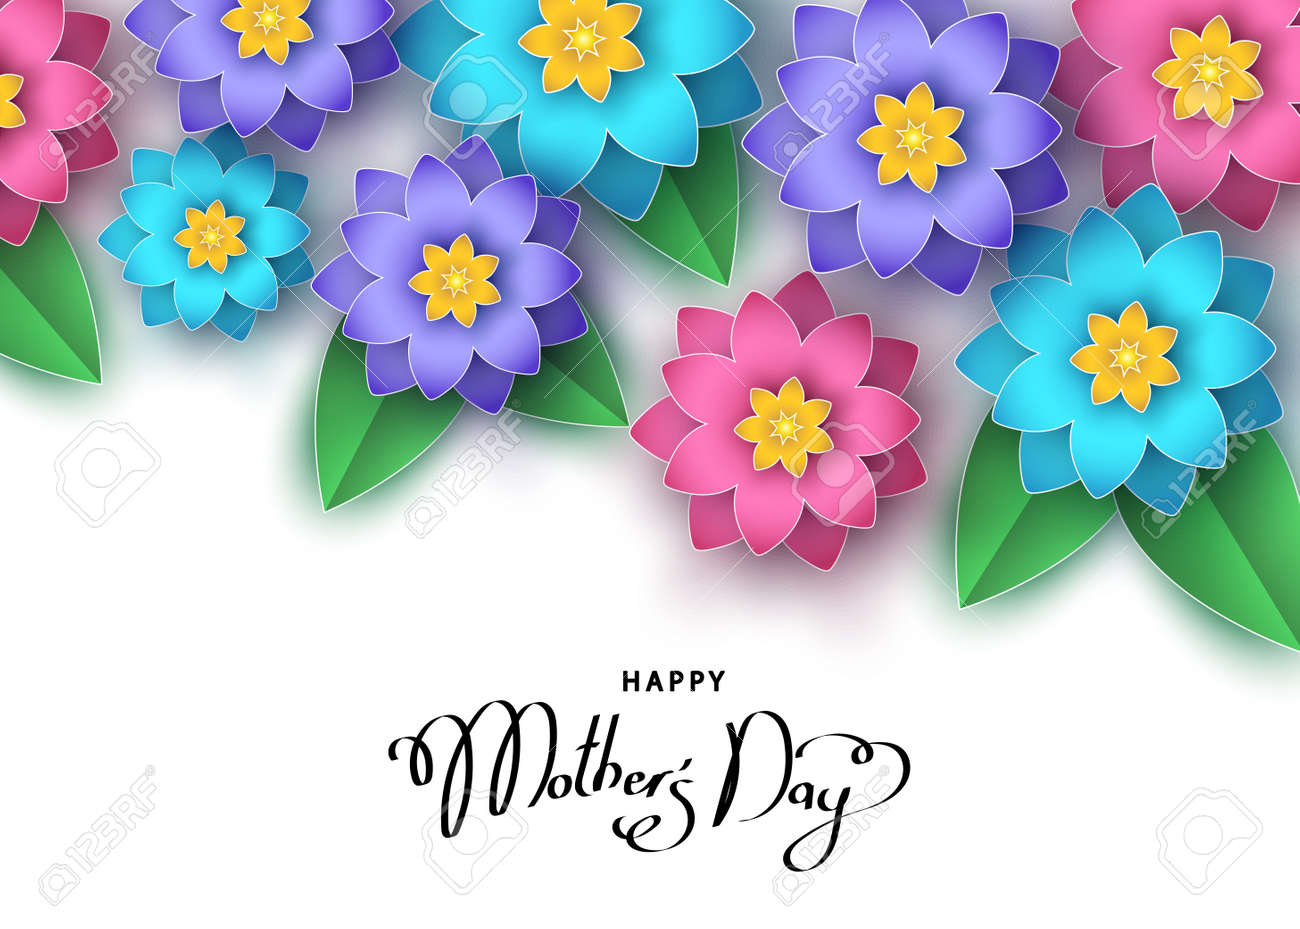 Happy Mothers Day Banner Template With Abstract Paper Cut Flowers